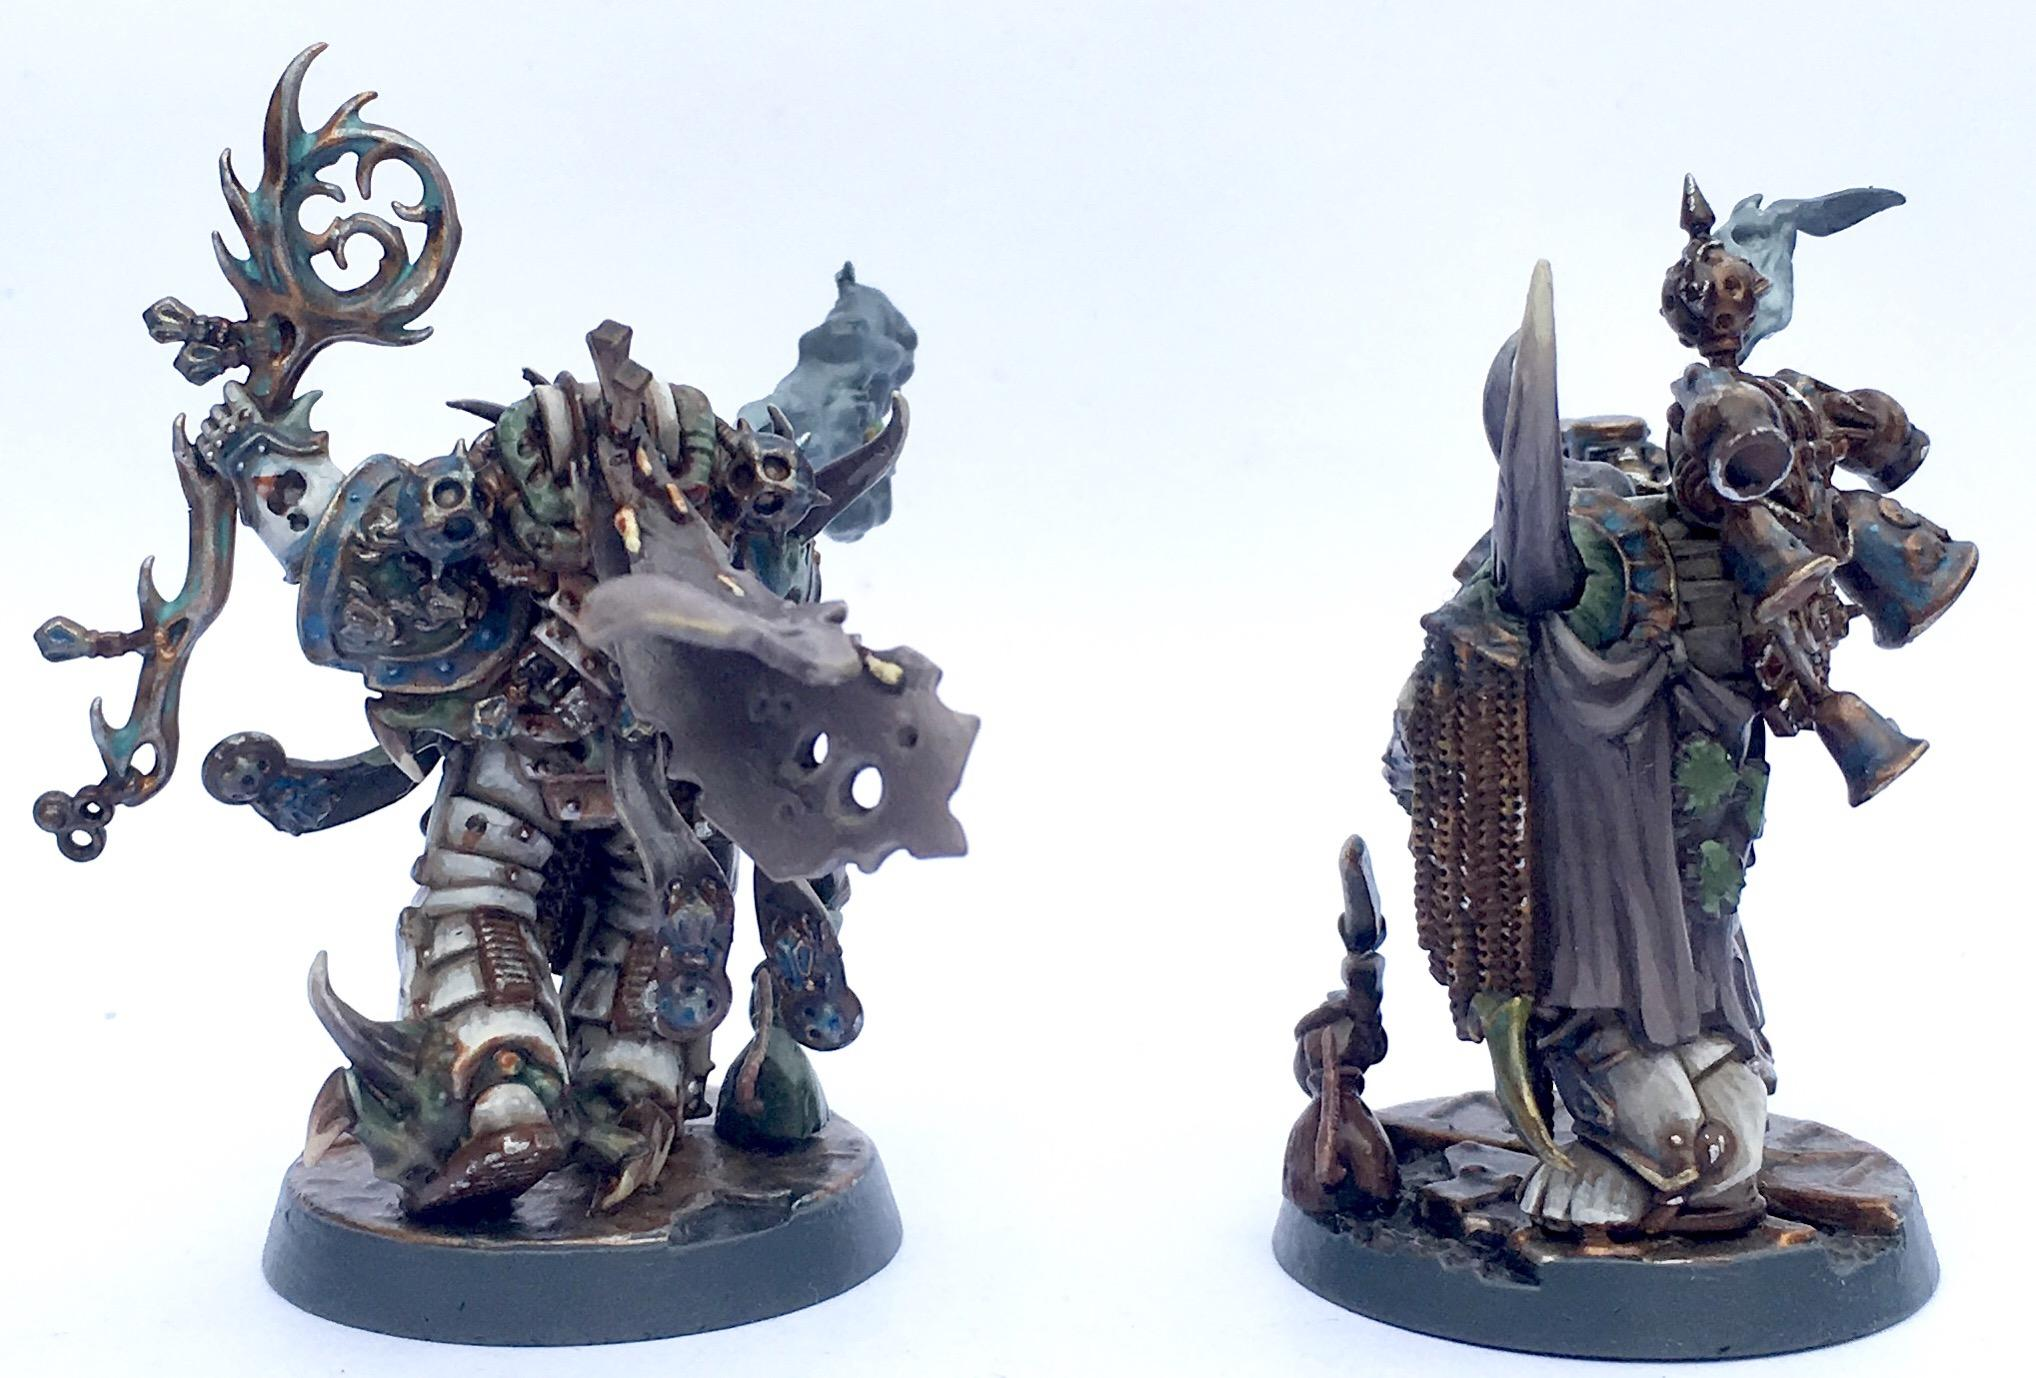 Chaos, Chaos Lord, Chaos Space Marines, Death Guard, Malignant Plaguecaster, Nurgle, Plaguecaster